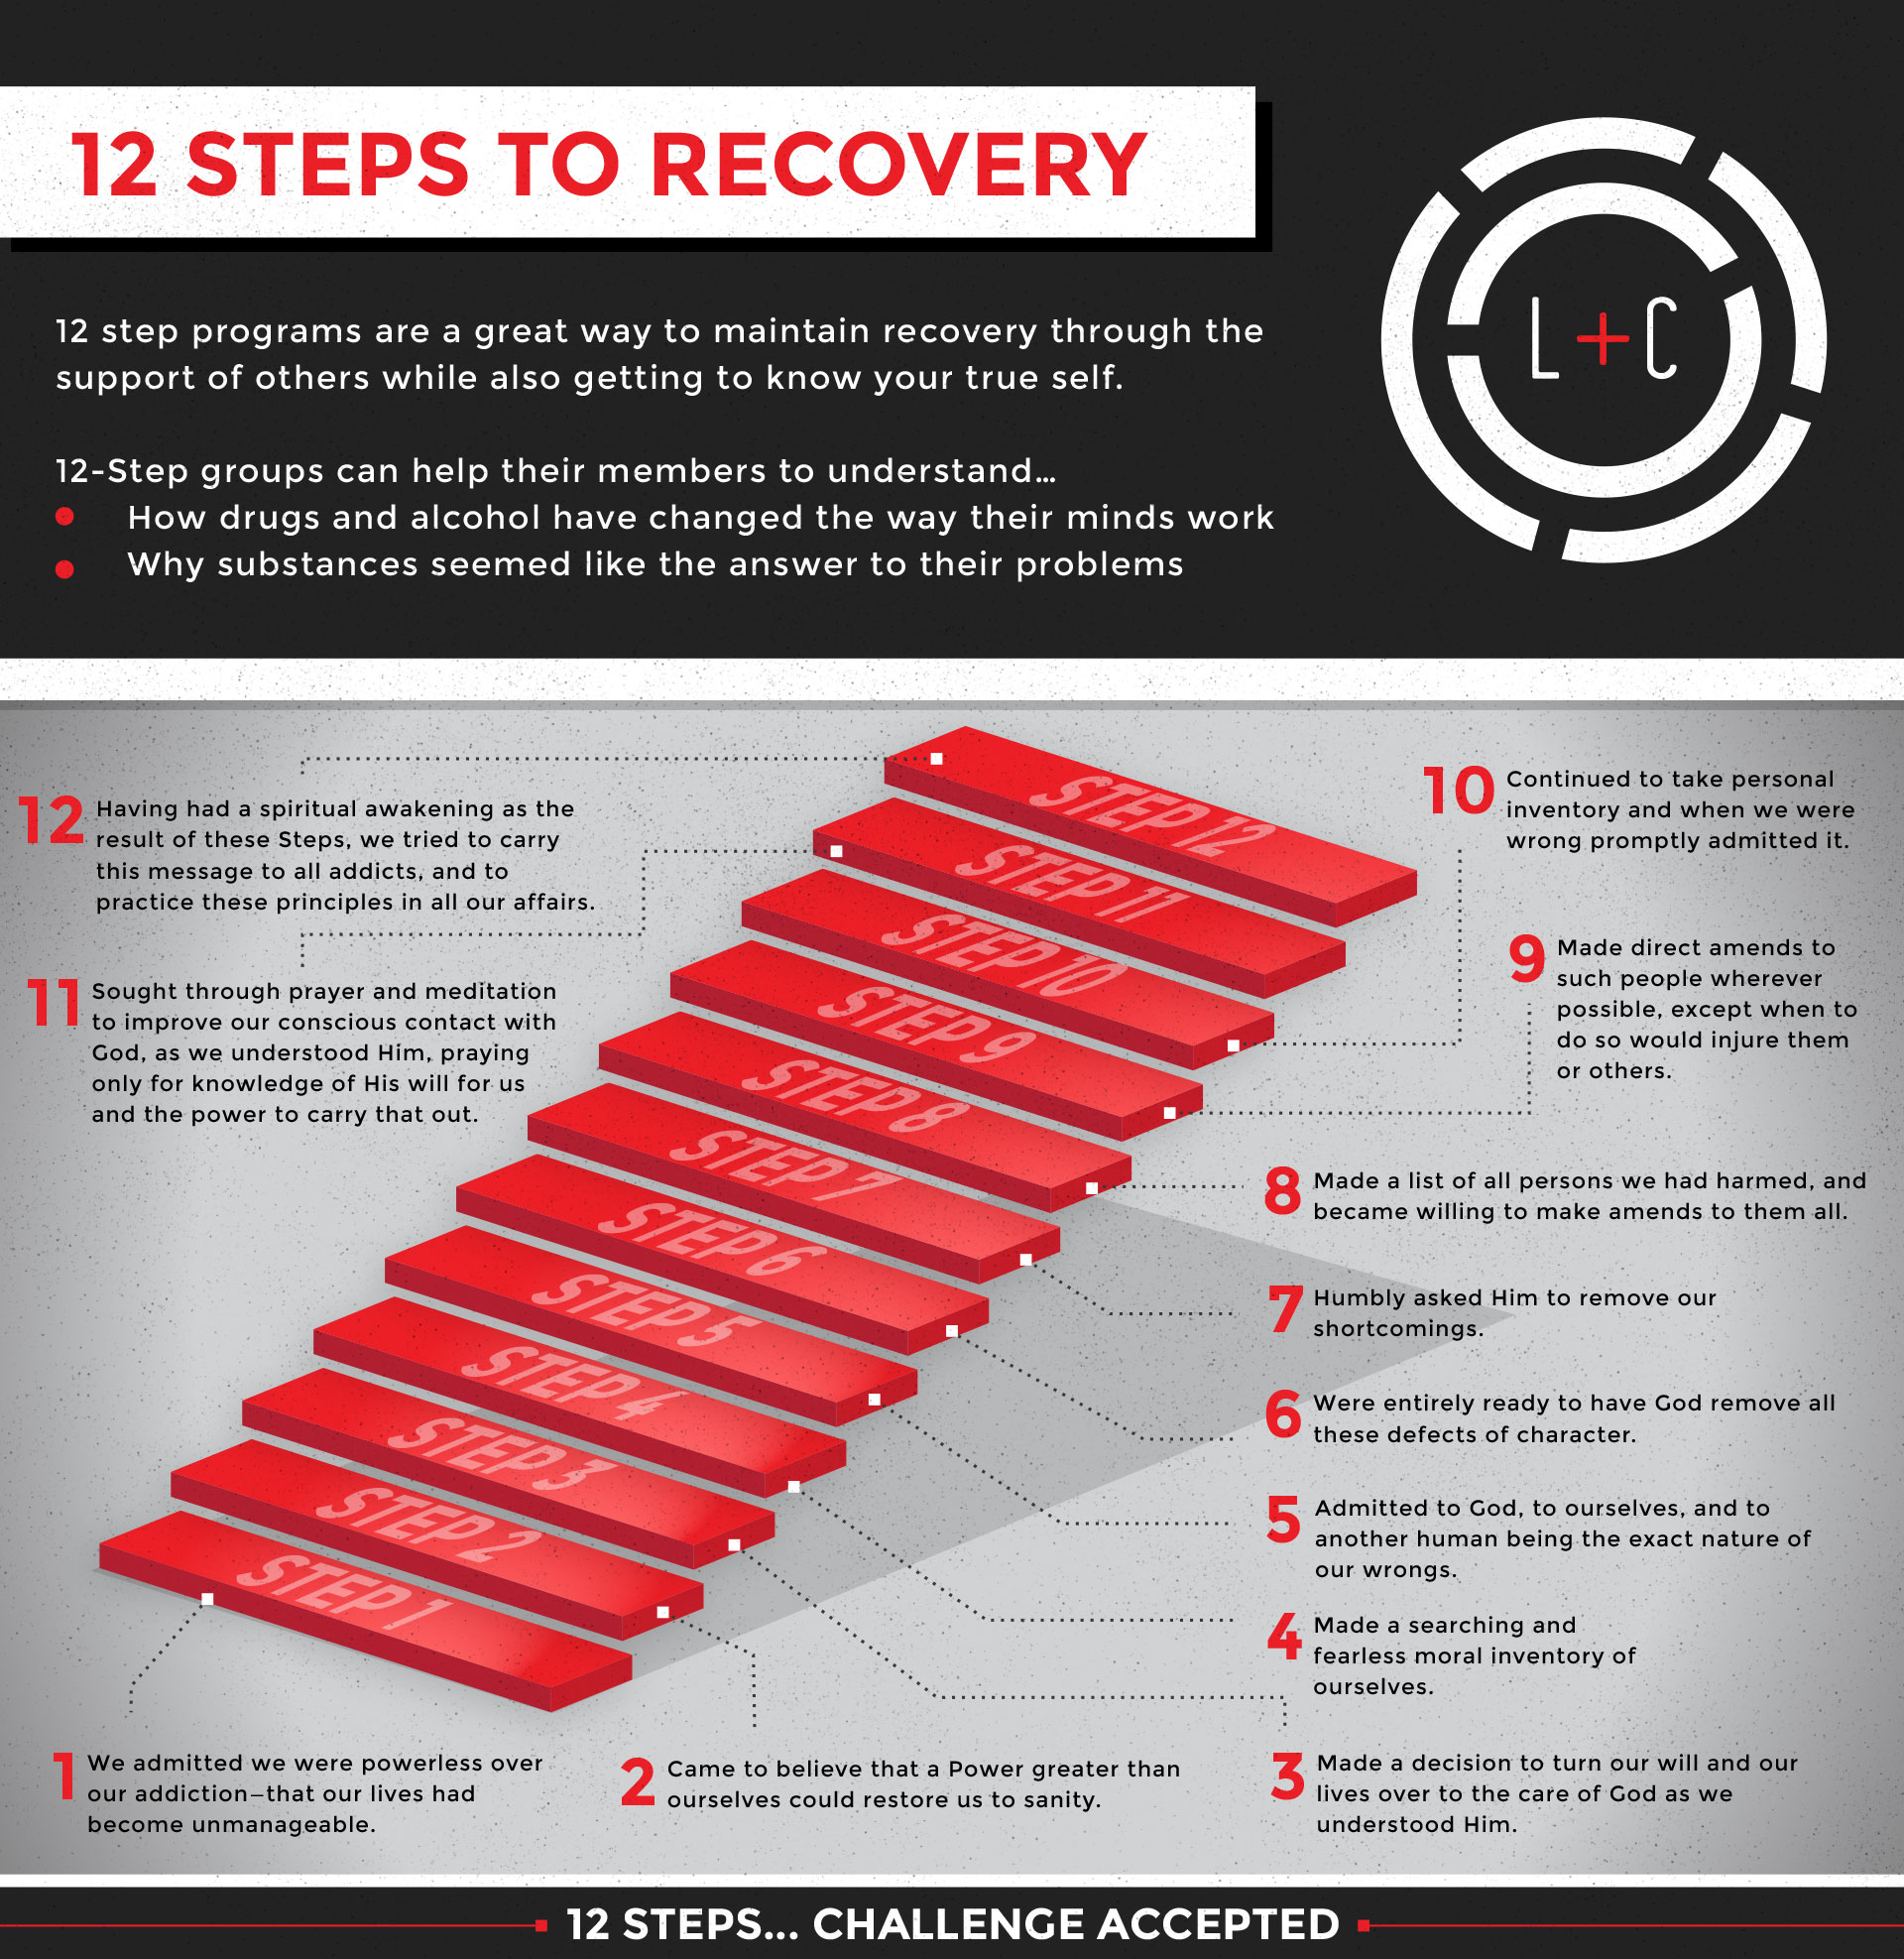 The Life Challenge 12 Steps To Recovery